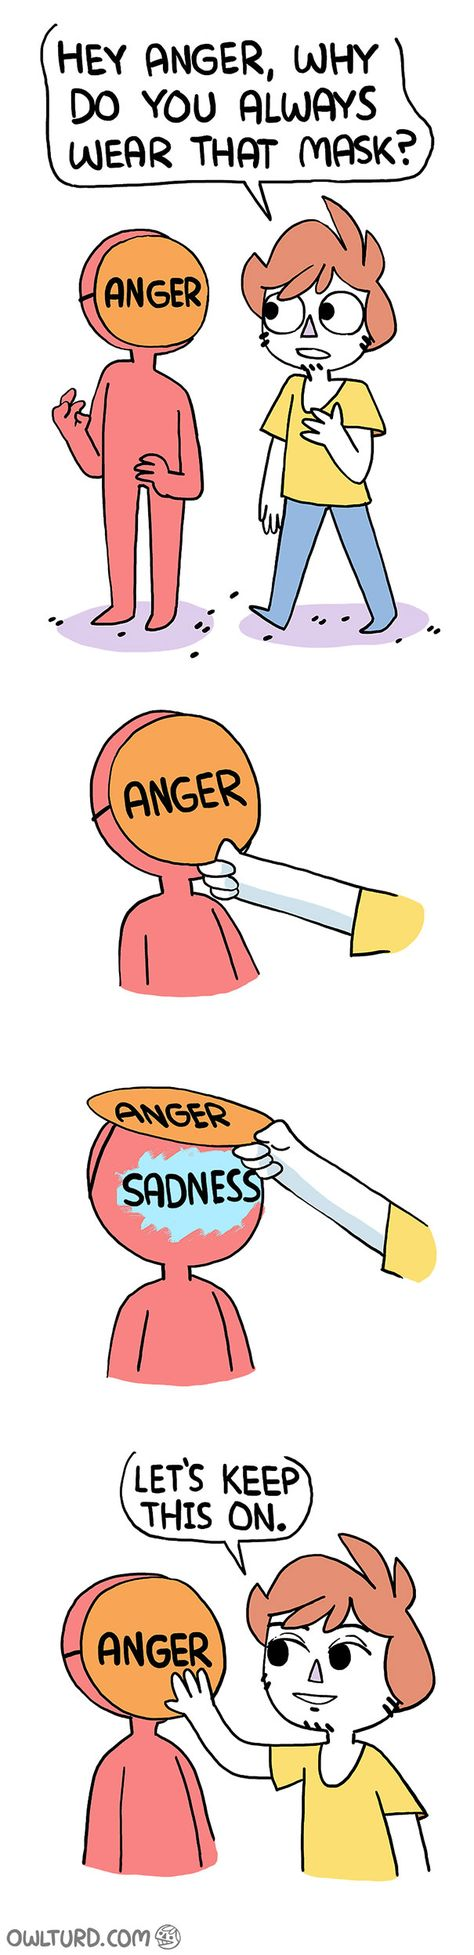 62 Hilariously Accurate Comics About Adulthood And Life By Owlturd